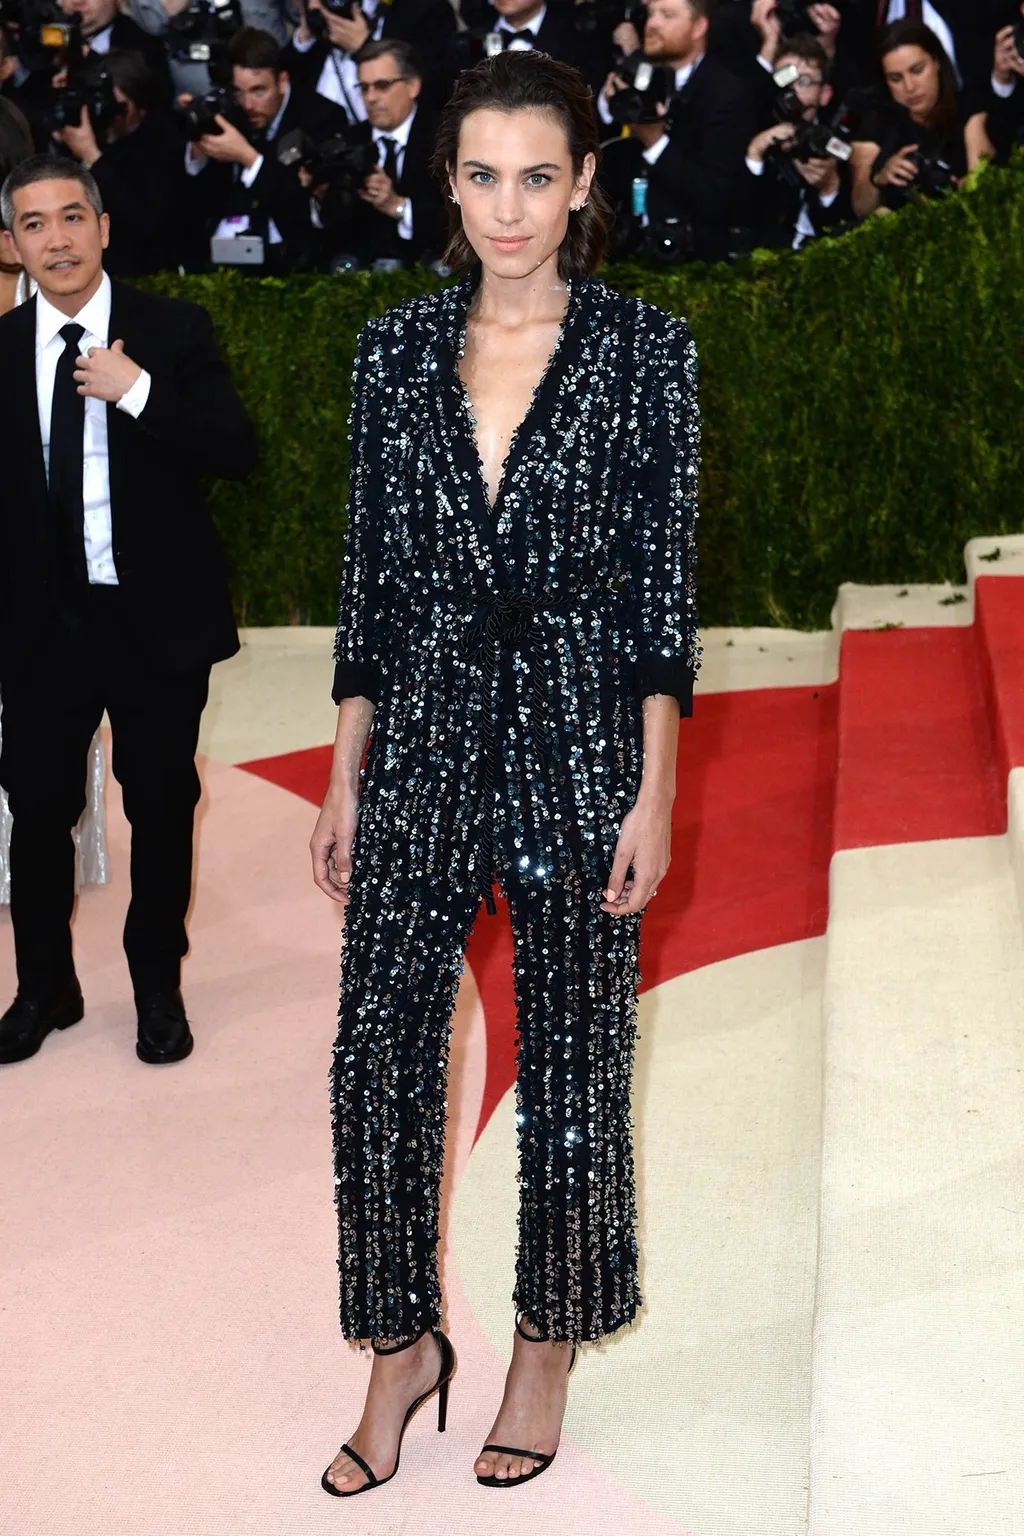 Celebrities Wearing Bling Alexa Chung Wearing a Black and Silver Thakoon tuxedo with an Open Toe Heel Sandals